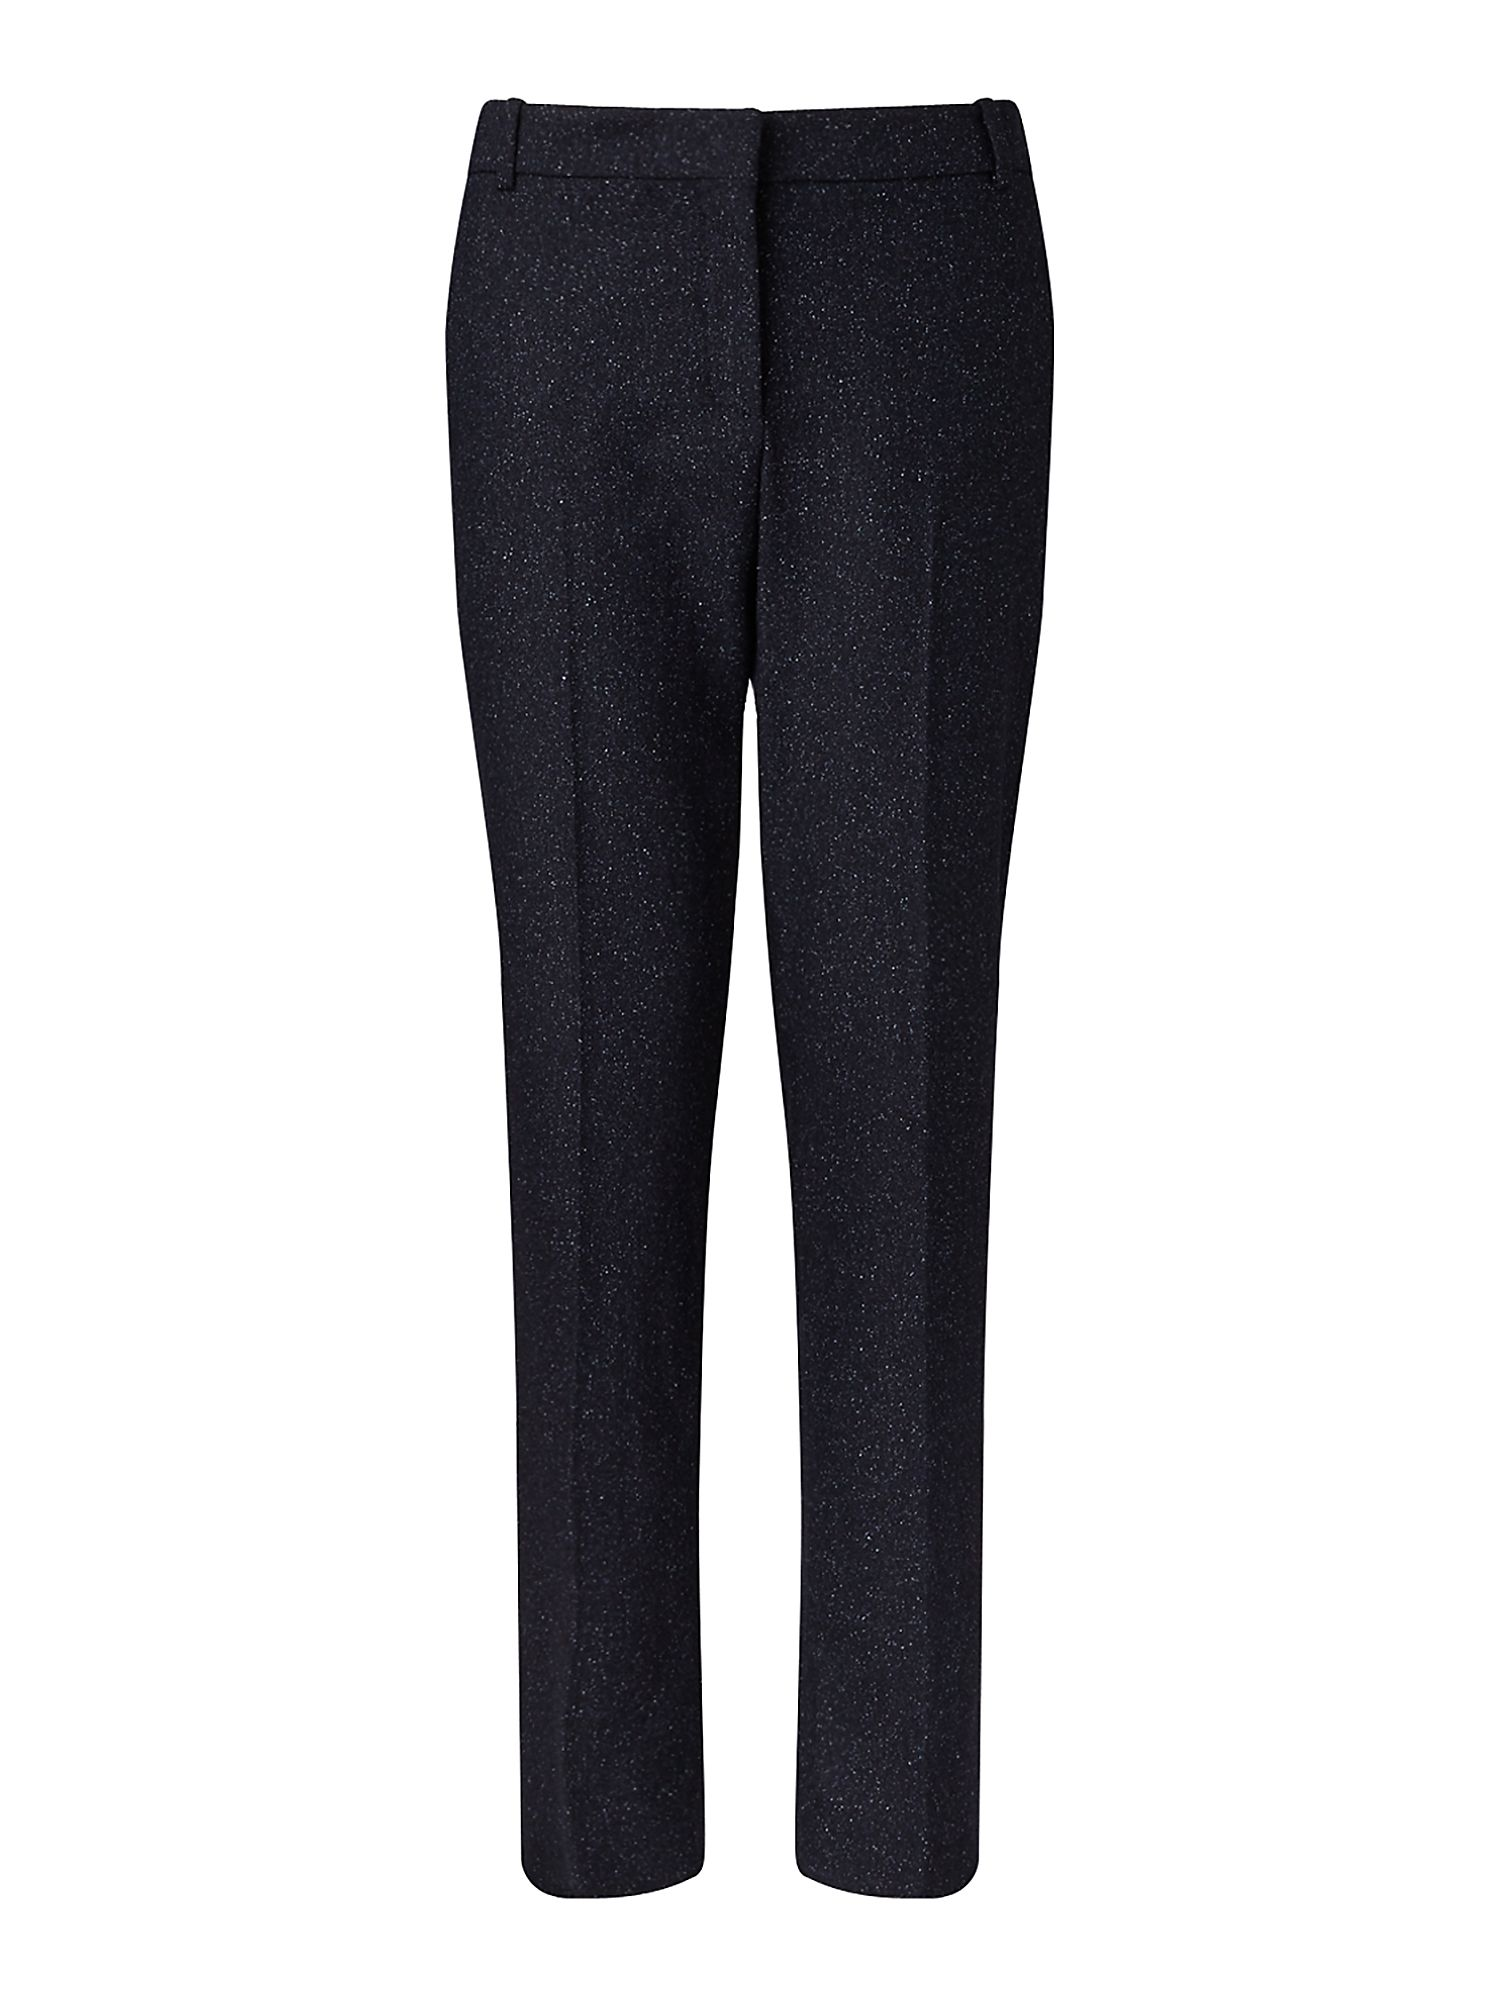 Jigsaw Flecked Tailoring London Trs, Blue